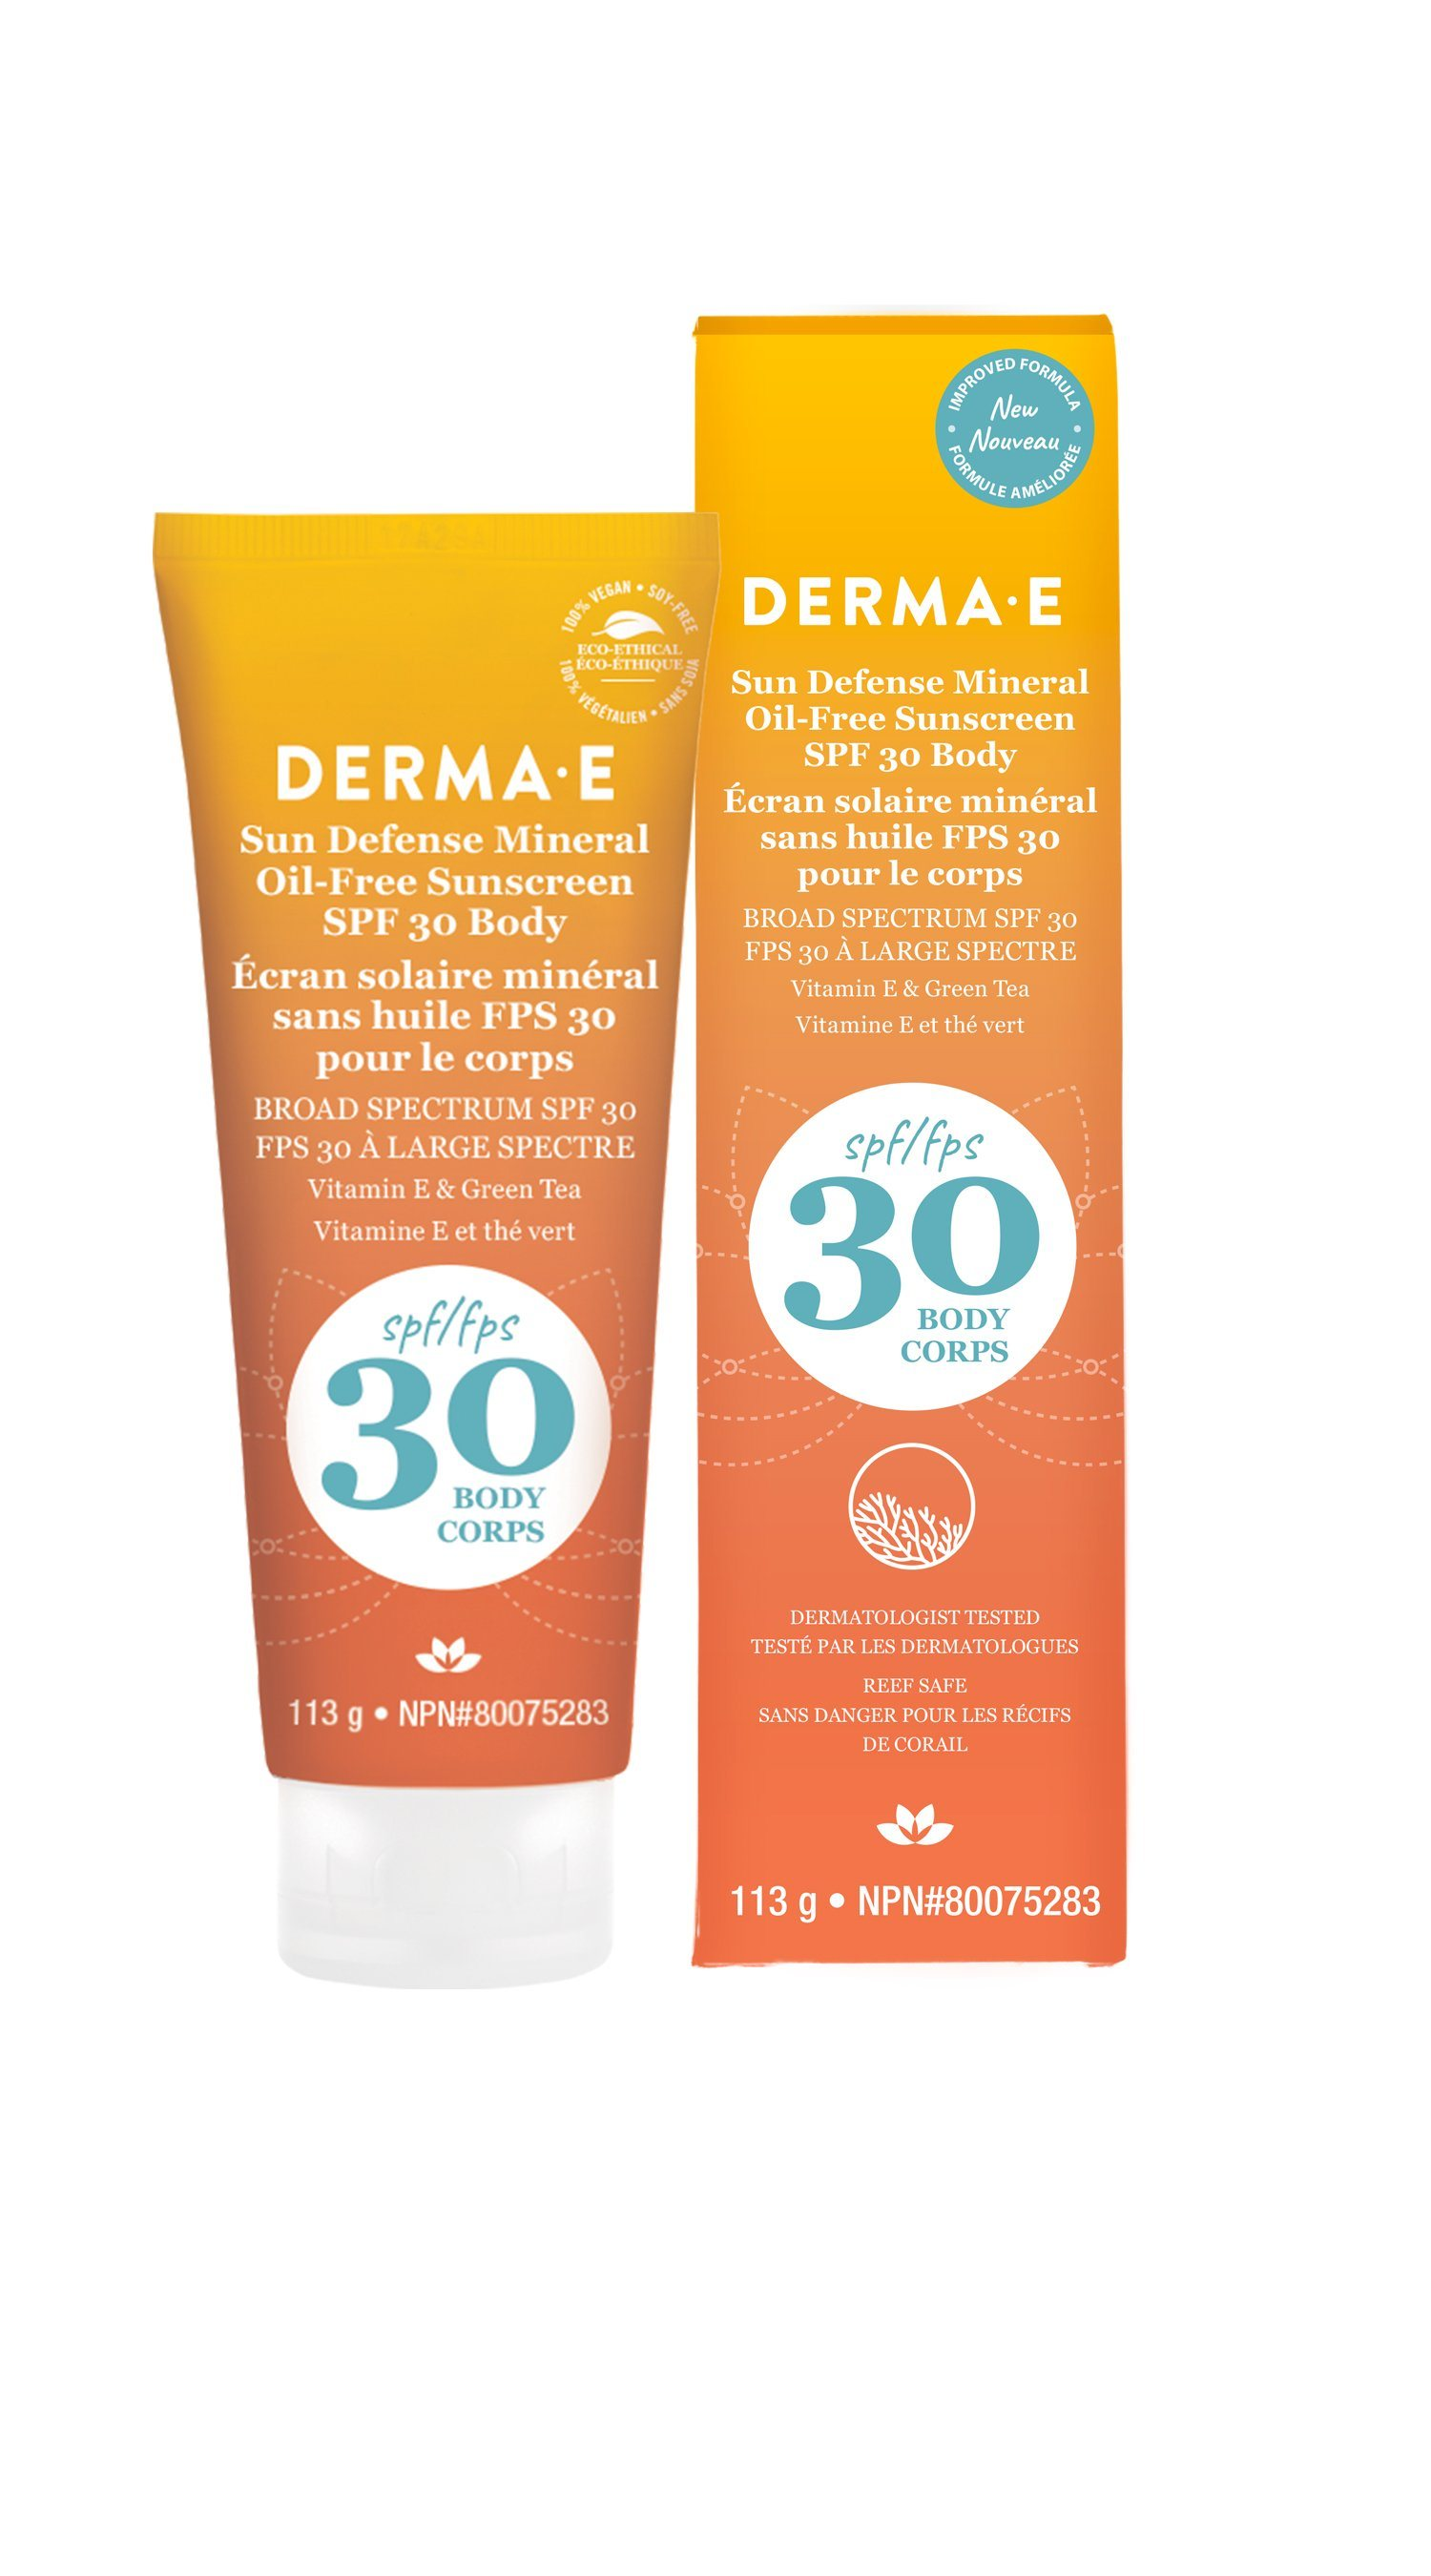 Beauty & Skin Care,Gluten Free,Vegan,Vegetarian,Non GMO - Derma E - Antioxidant Natural Sunscreen SPF 30 Body Lotion, 113g